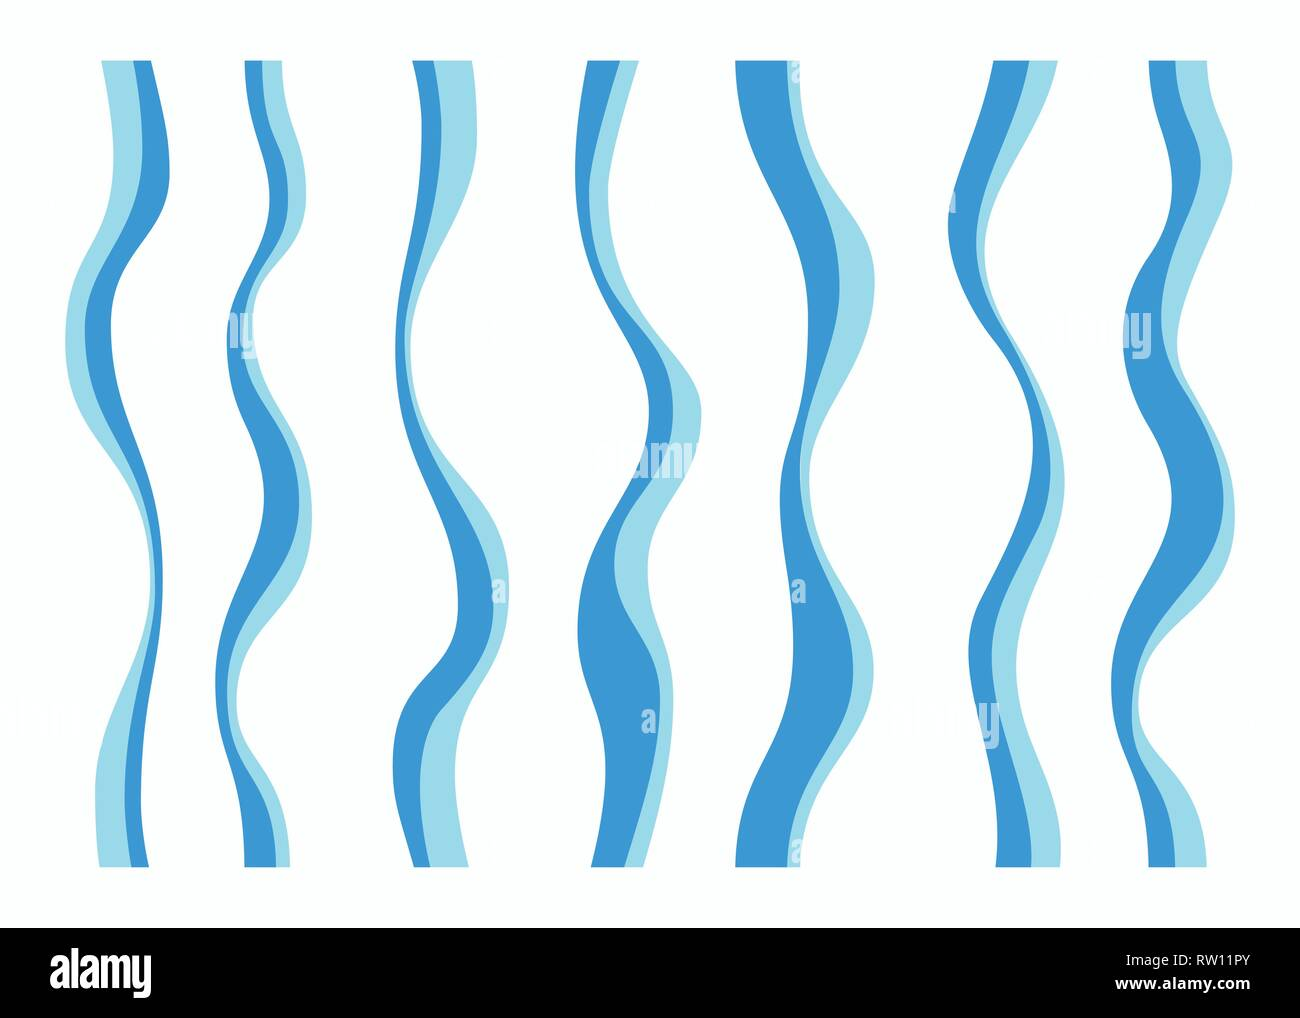 Set of different curved lines. Abstract vector elements. Blue and turquoise colors. - Stock Image